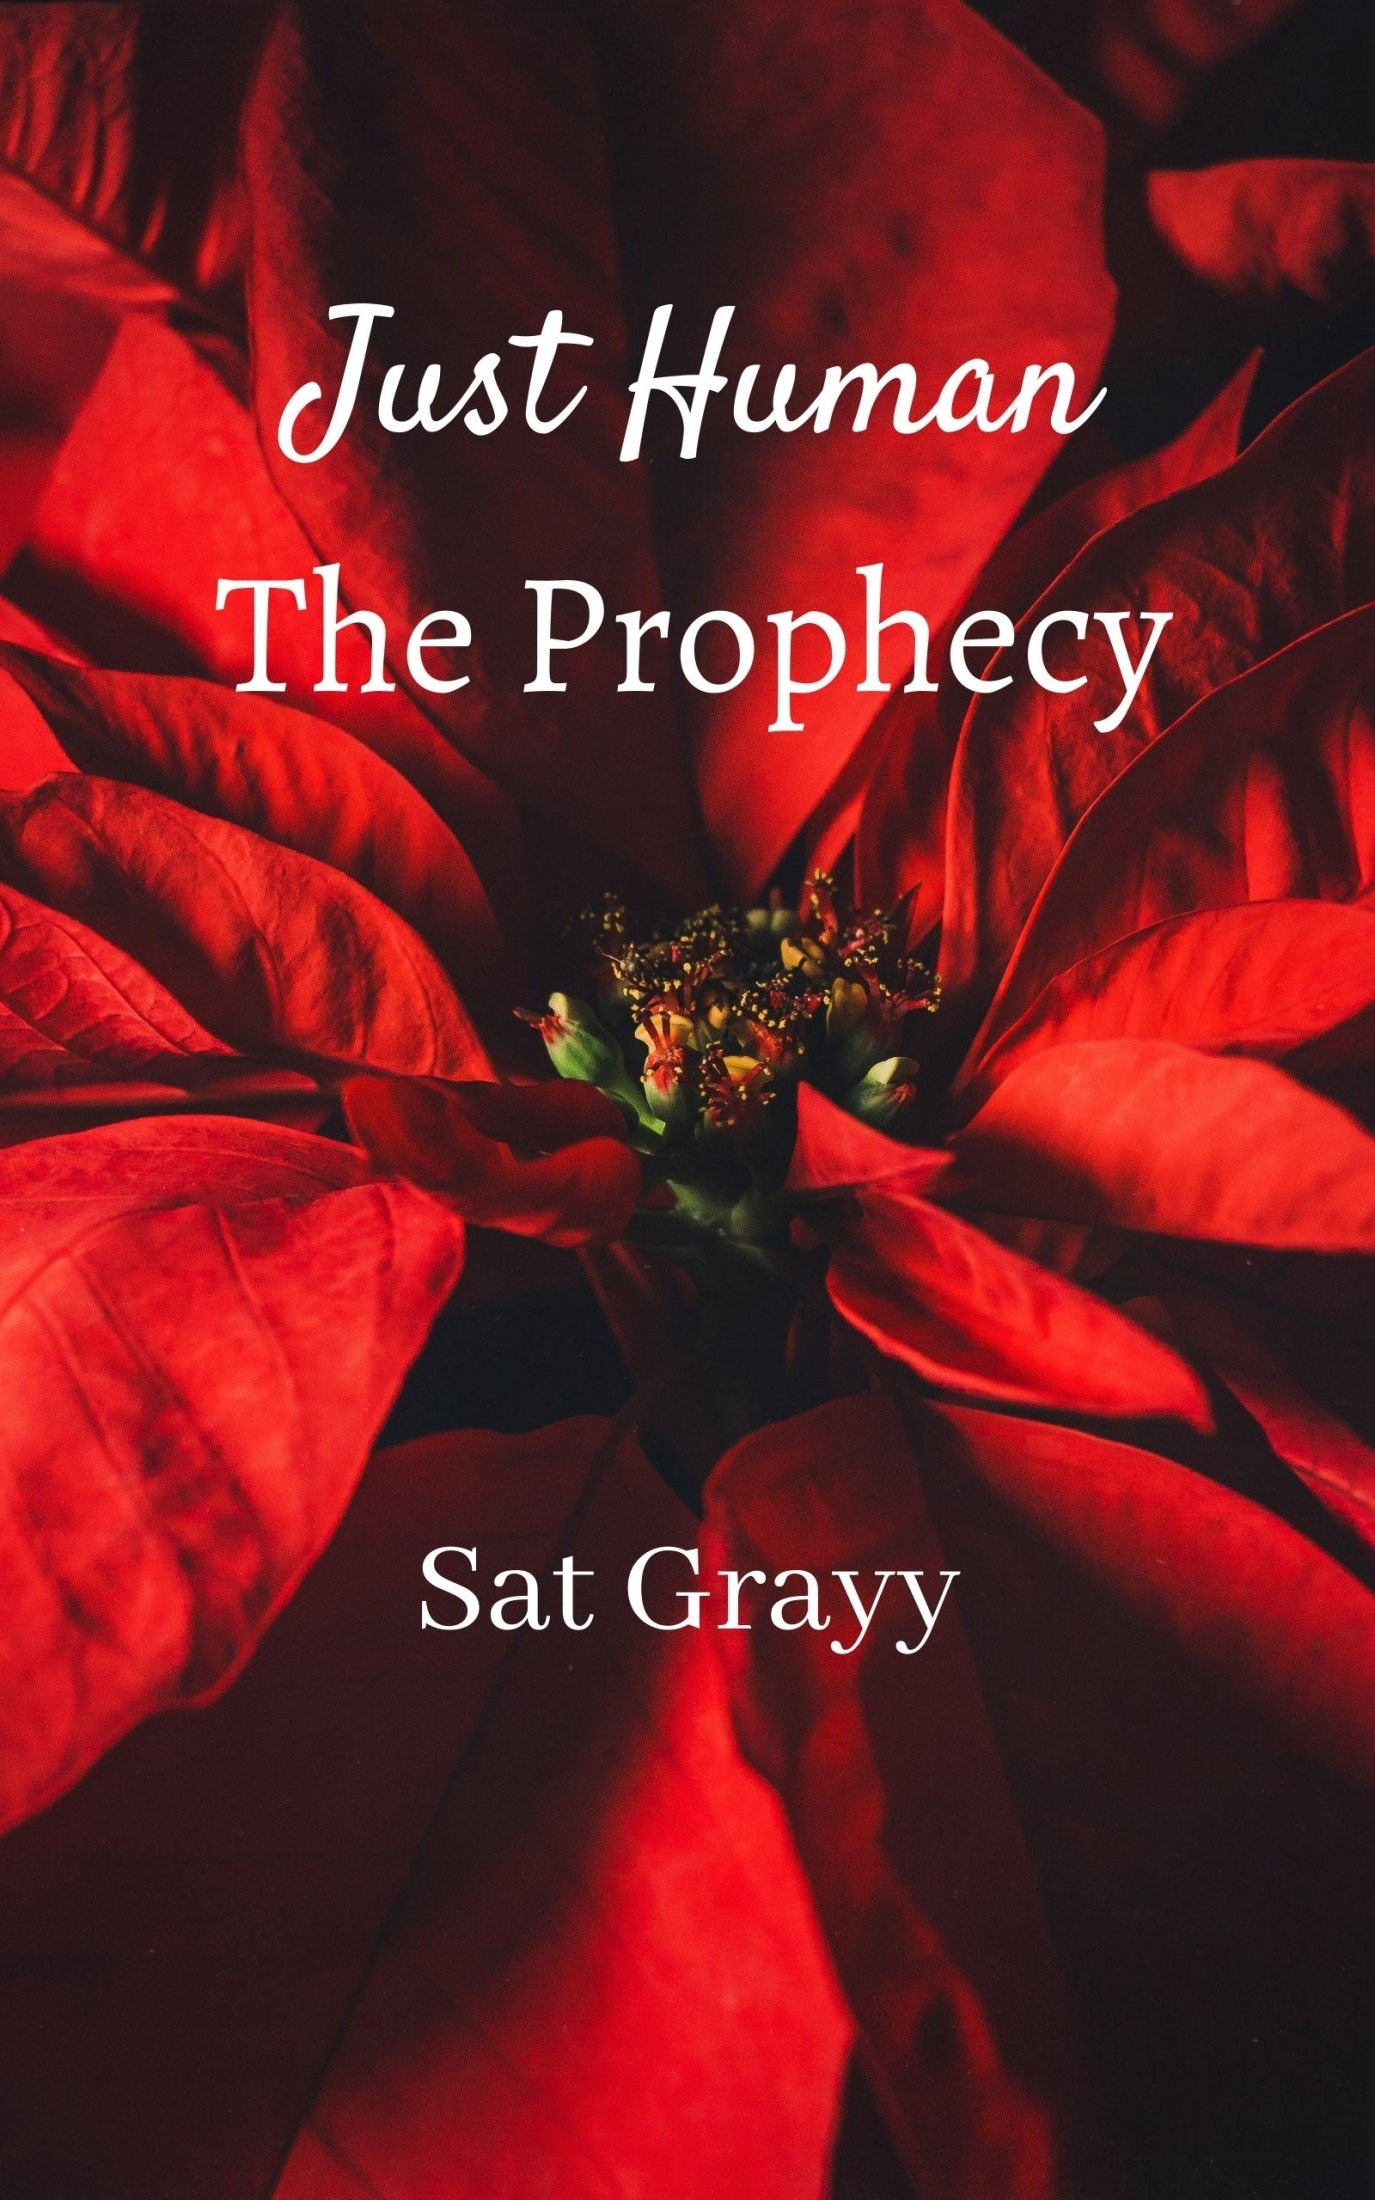 Just Human; The Prophecy (PREVIEW)